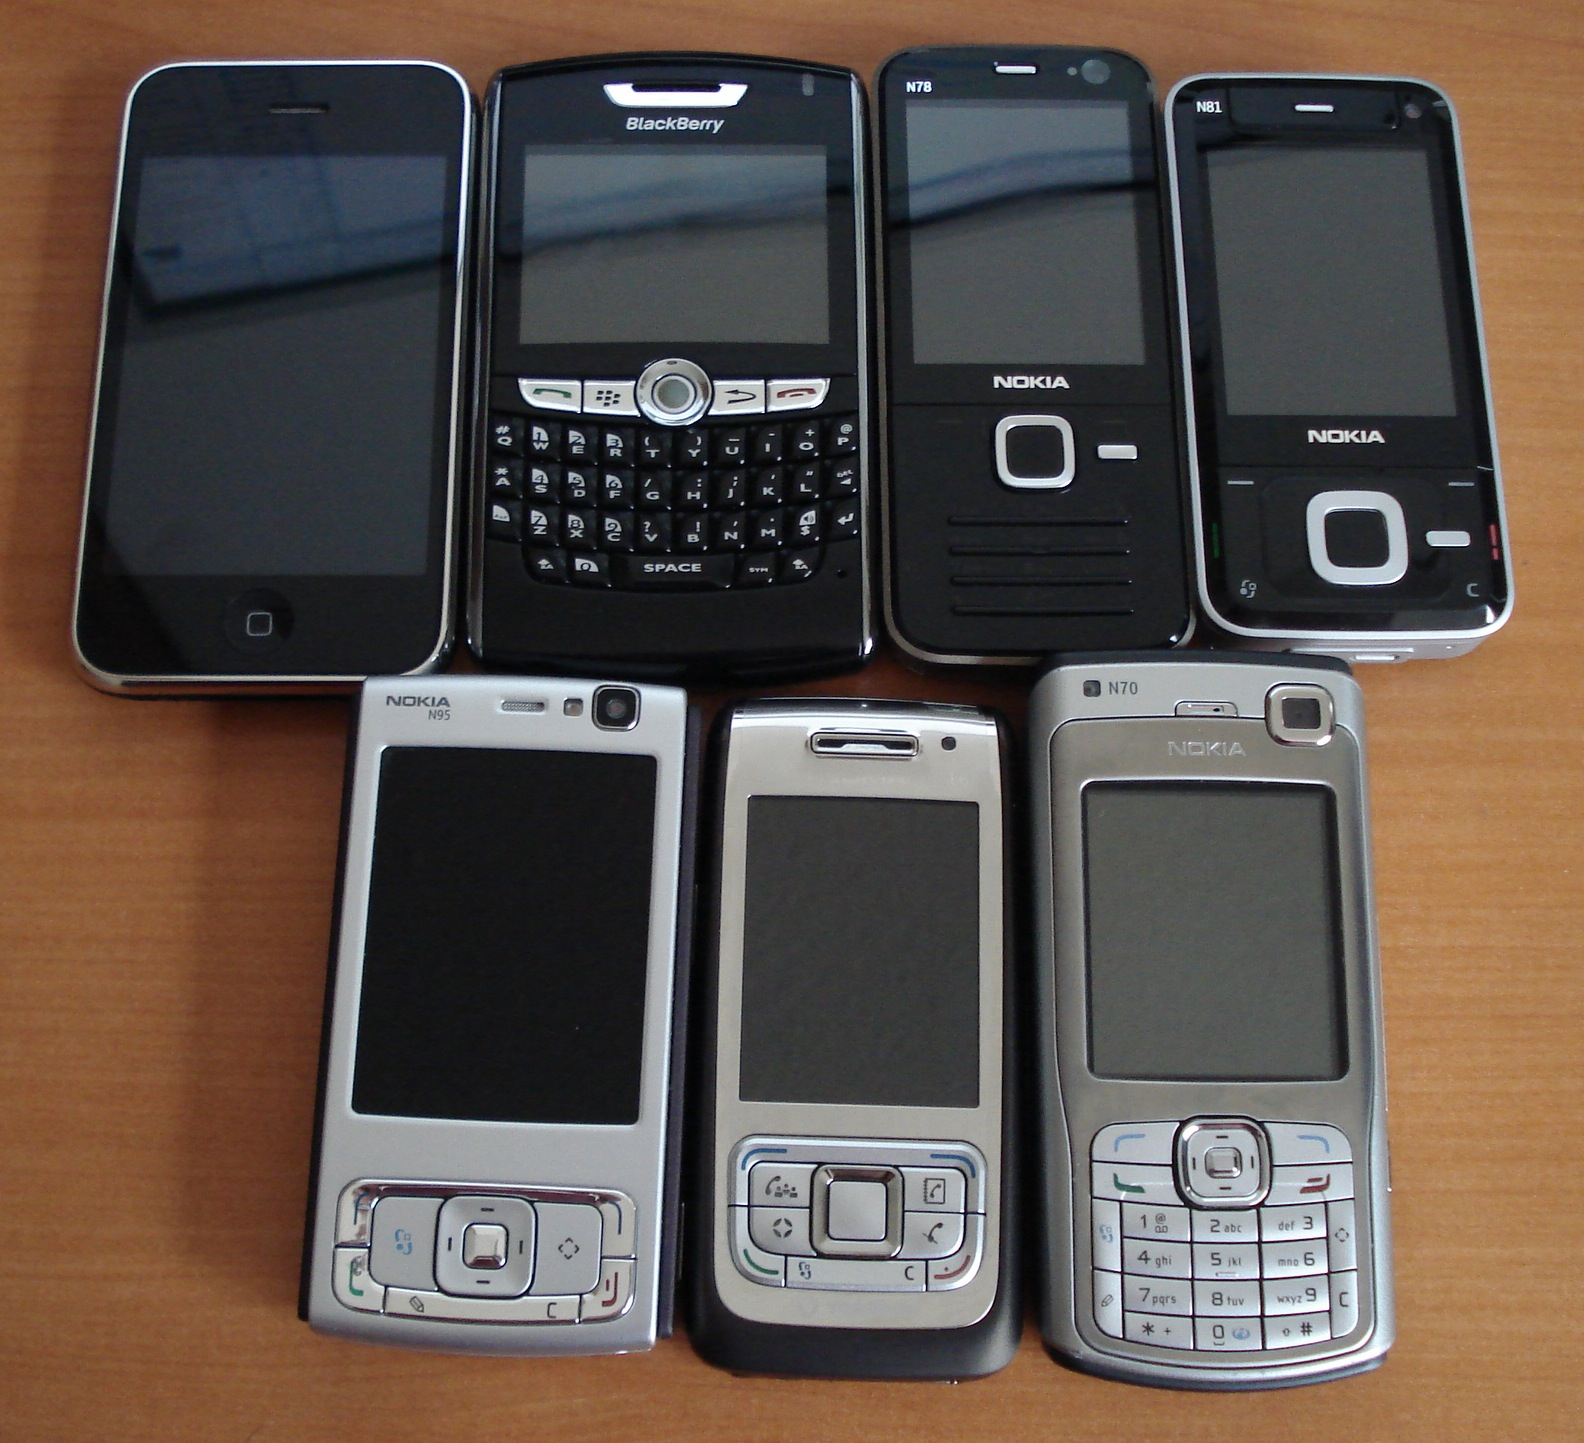 Another contender is about to enter the war of the smartphones. Image from Wikimedia.